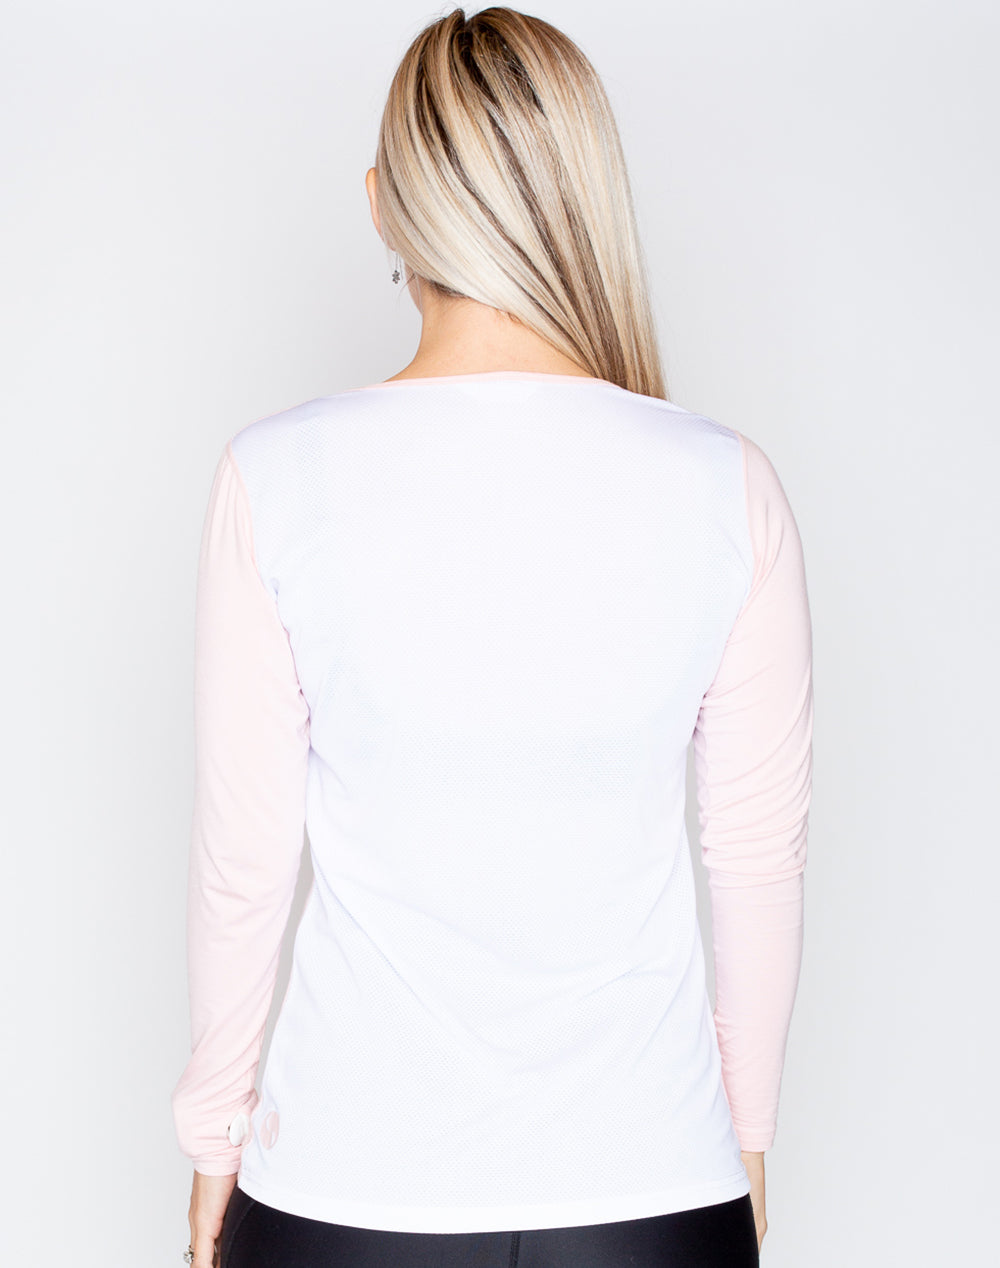 rear view of a fit mum wearing a colourful maternity top